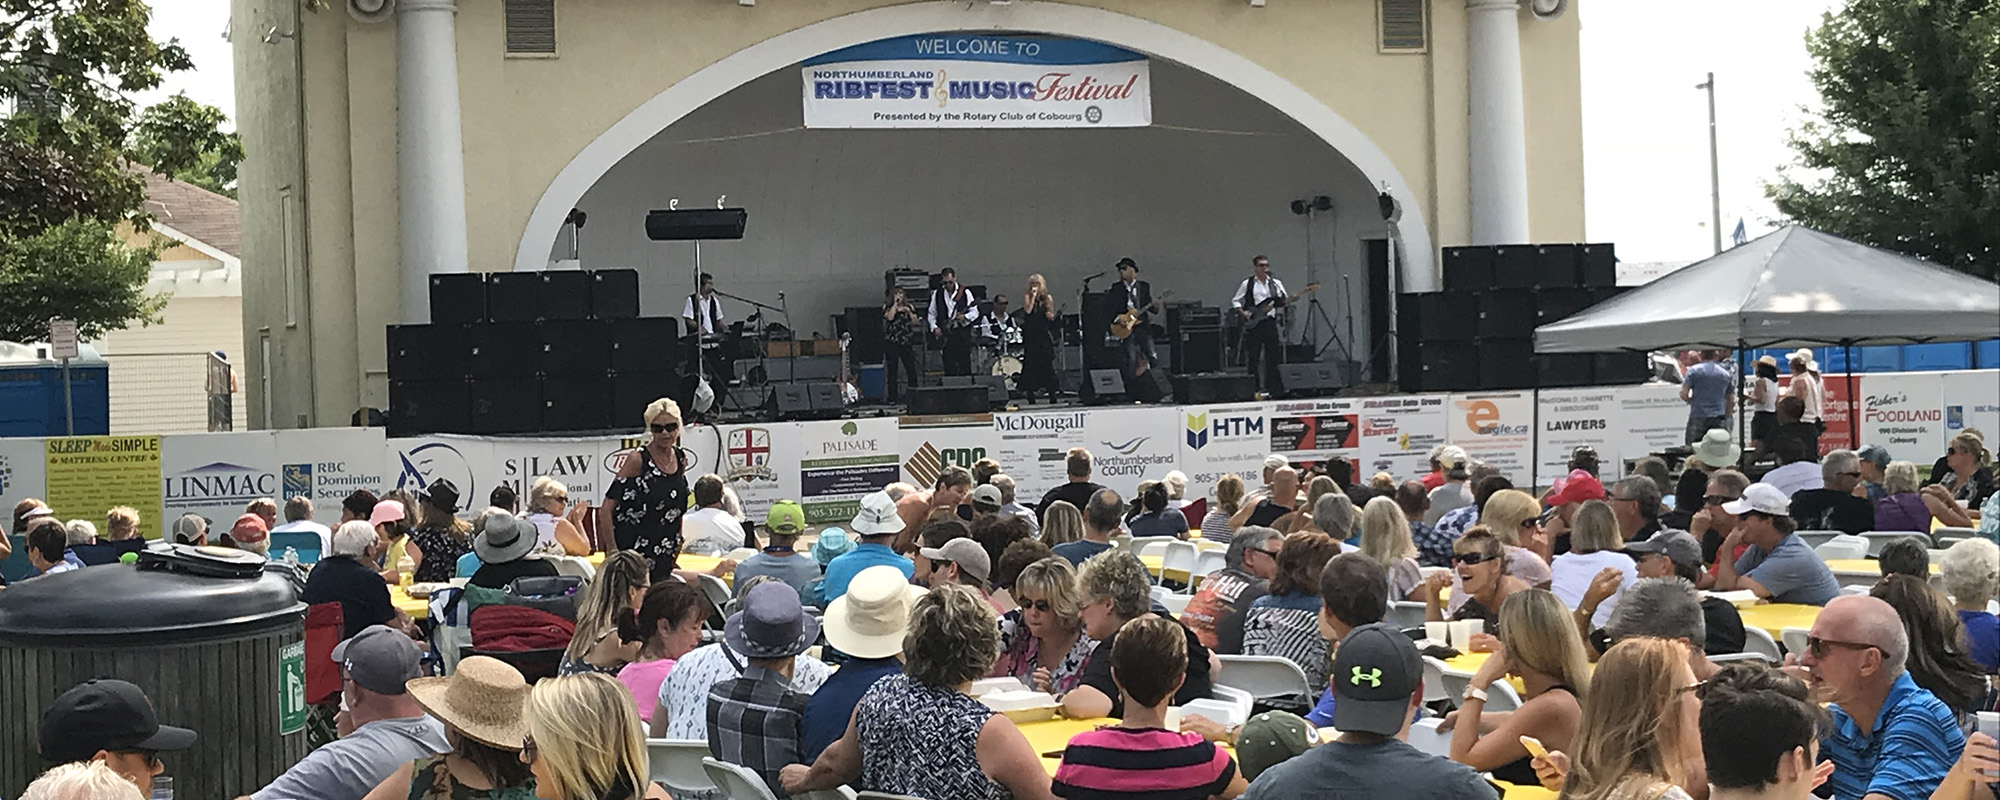 The Rotary Club of Cobourg - Ribfest and Music Festival